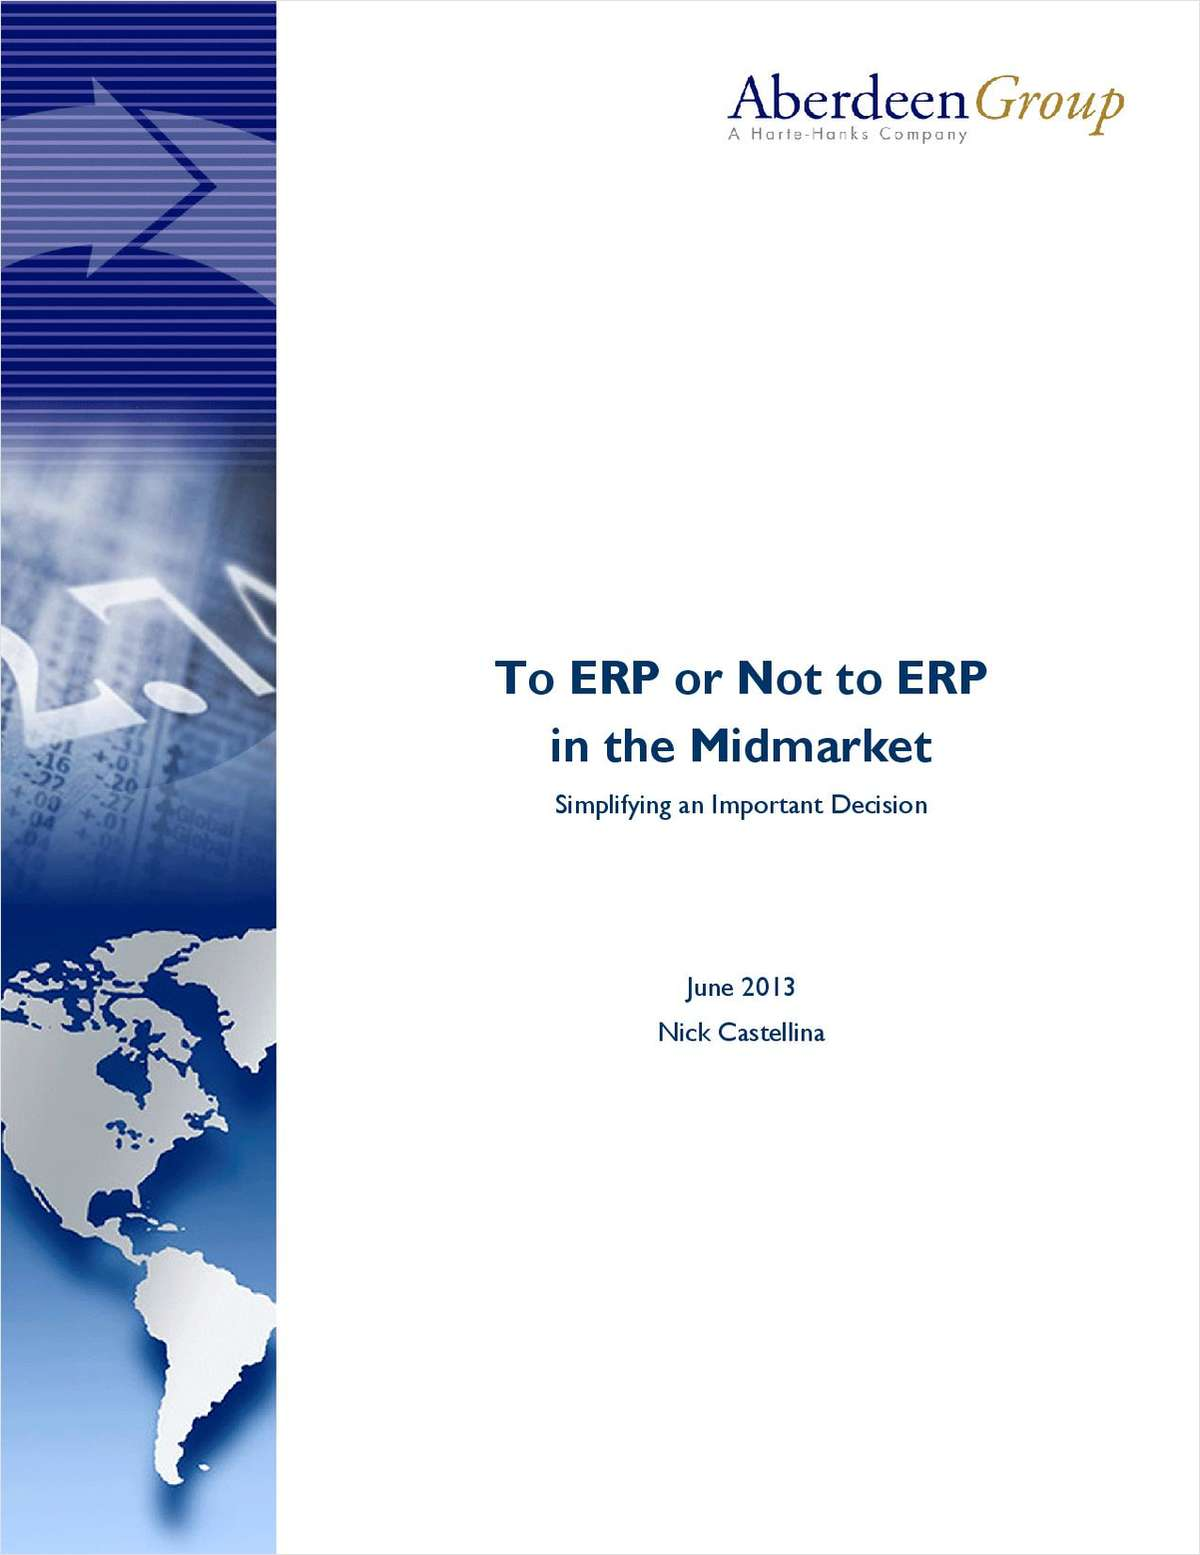 To ERP or Not to ERP in the Mid-Market: Simplifying an Important Decision